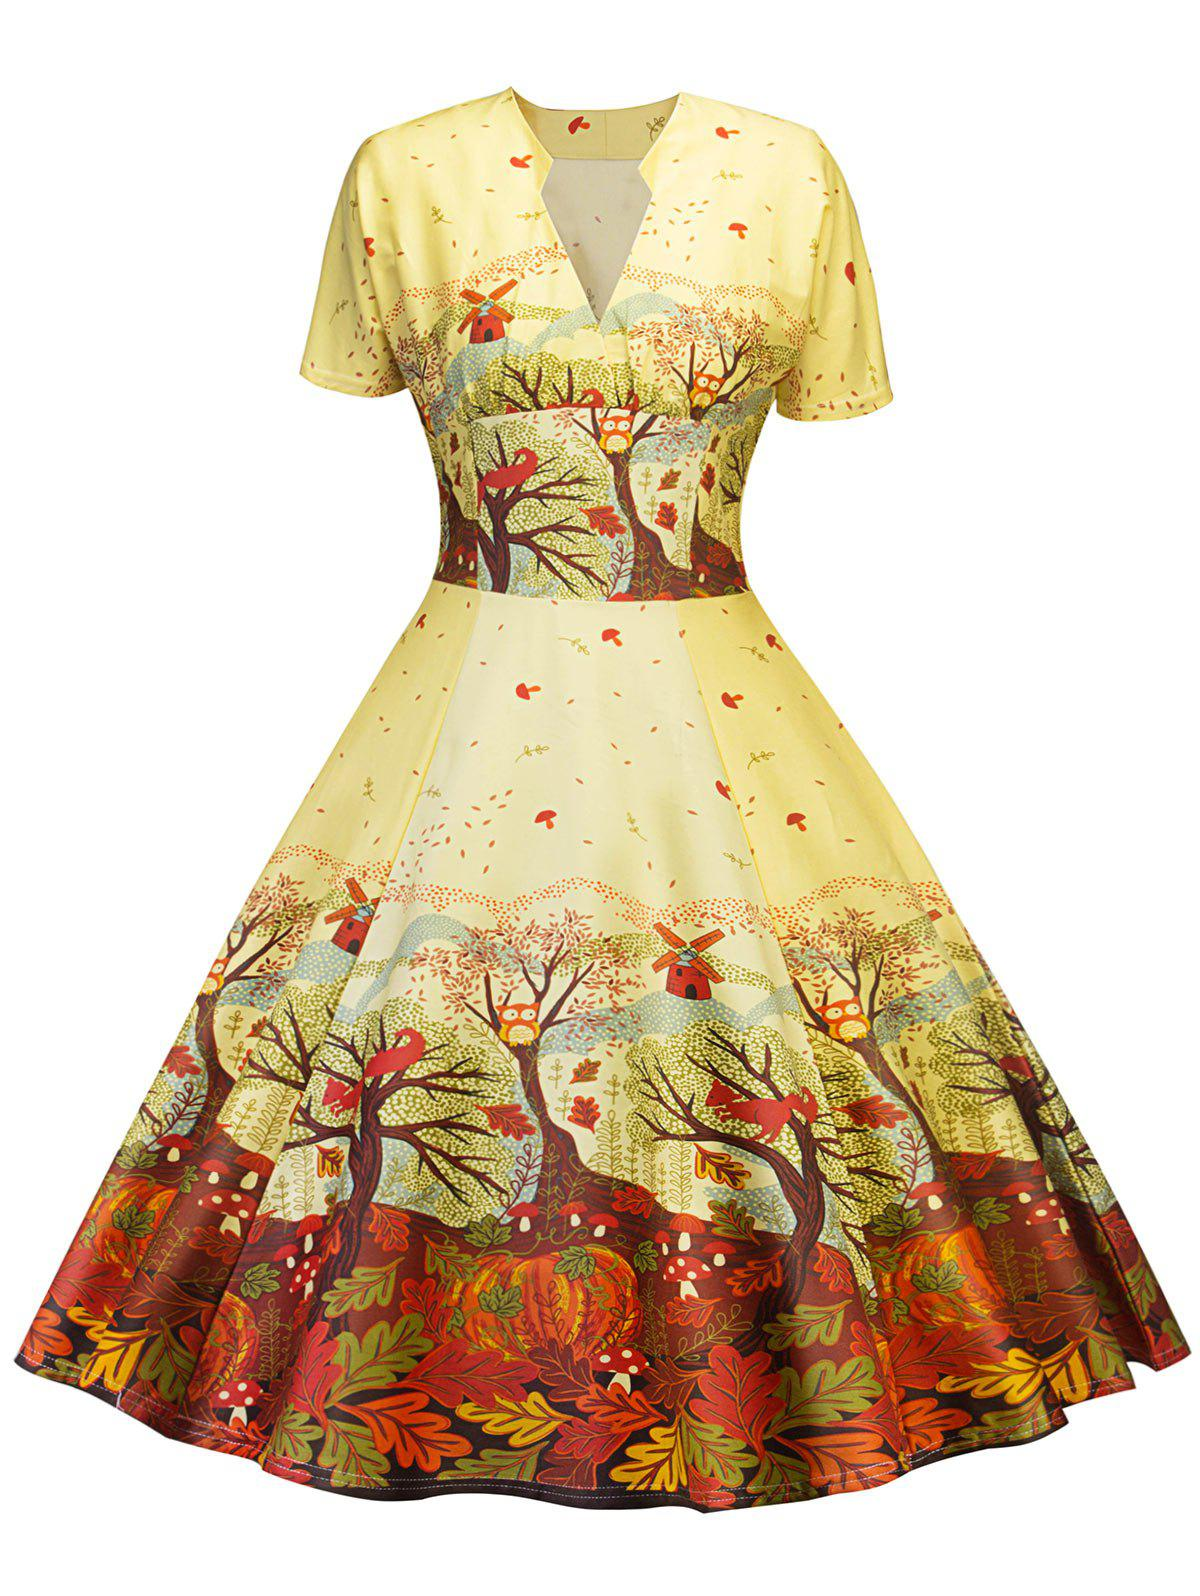 Affordable Retro Forest Printed Pin Up Dress